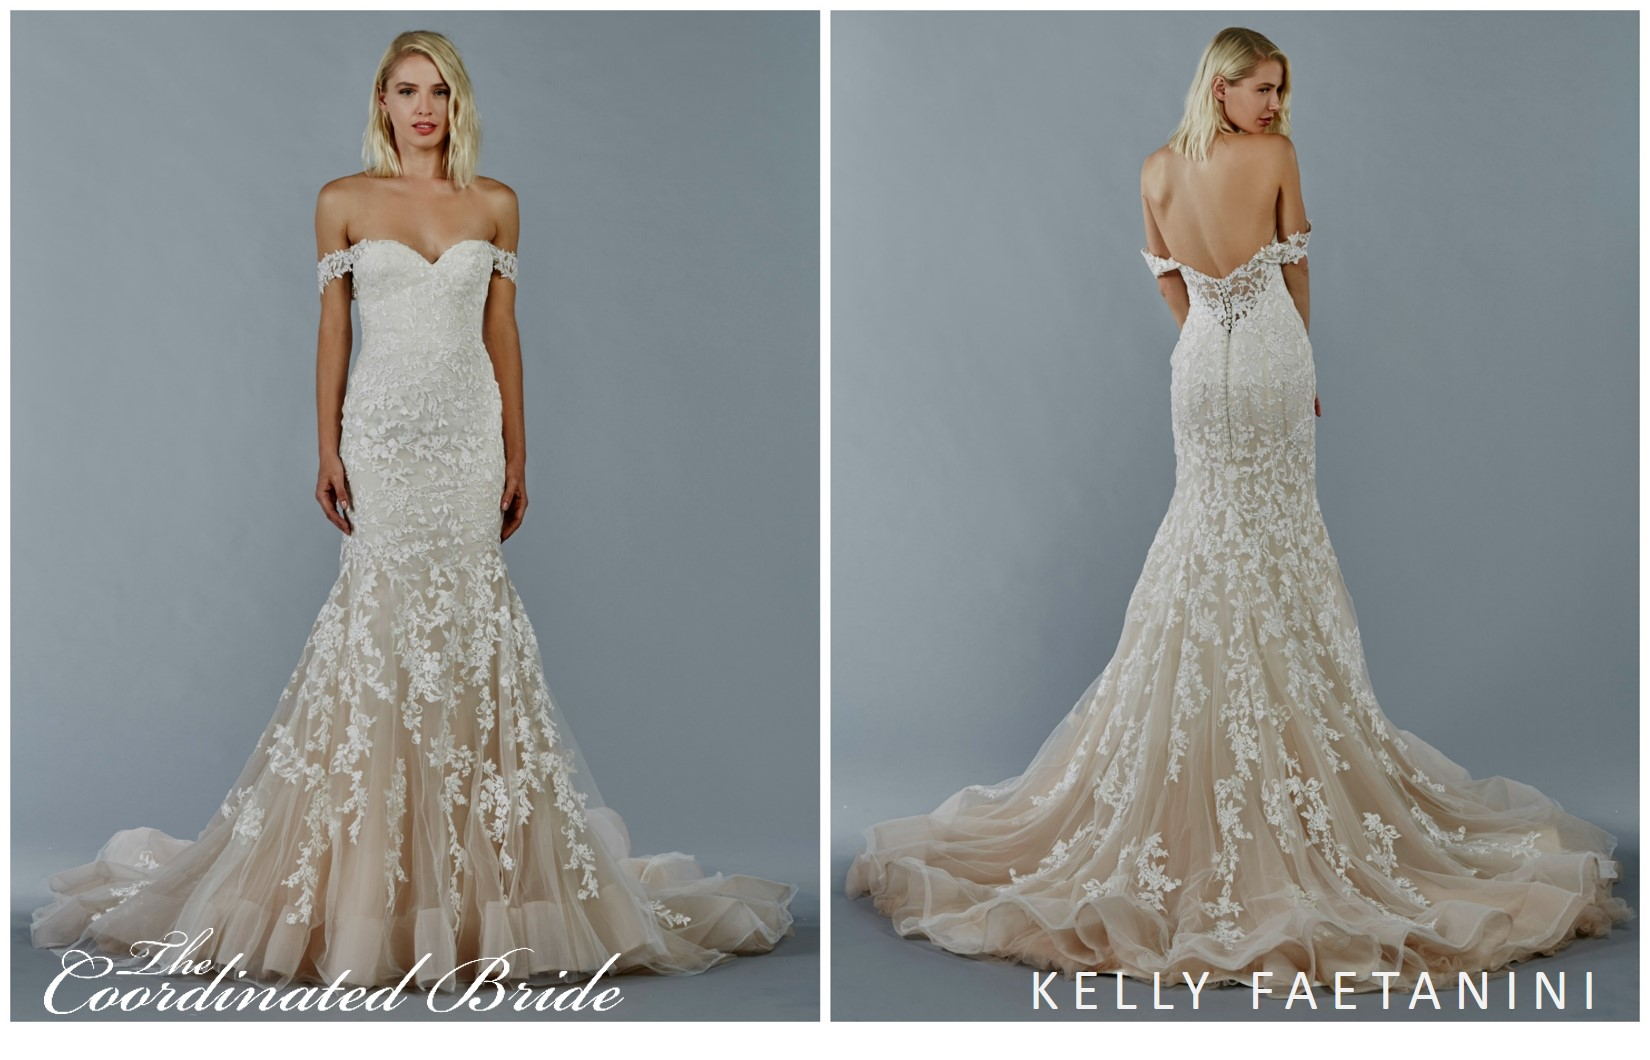 KELLY FAETANINI FALL 2018 BRIDAL COLLECTION | The Coordinated Bride